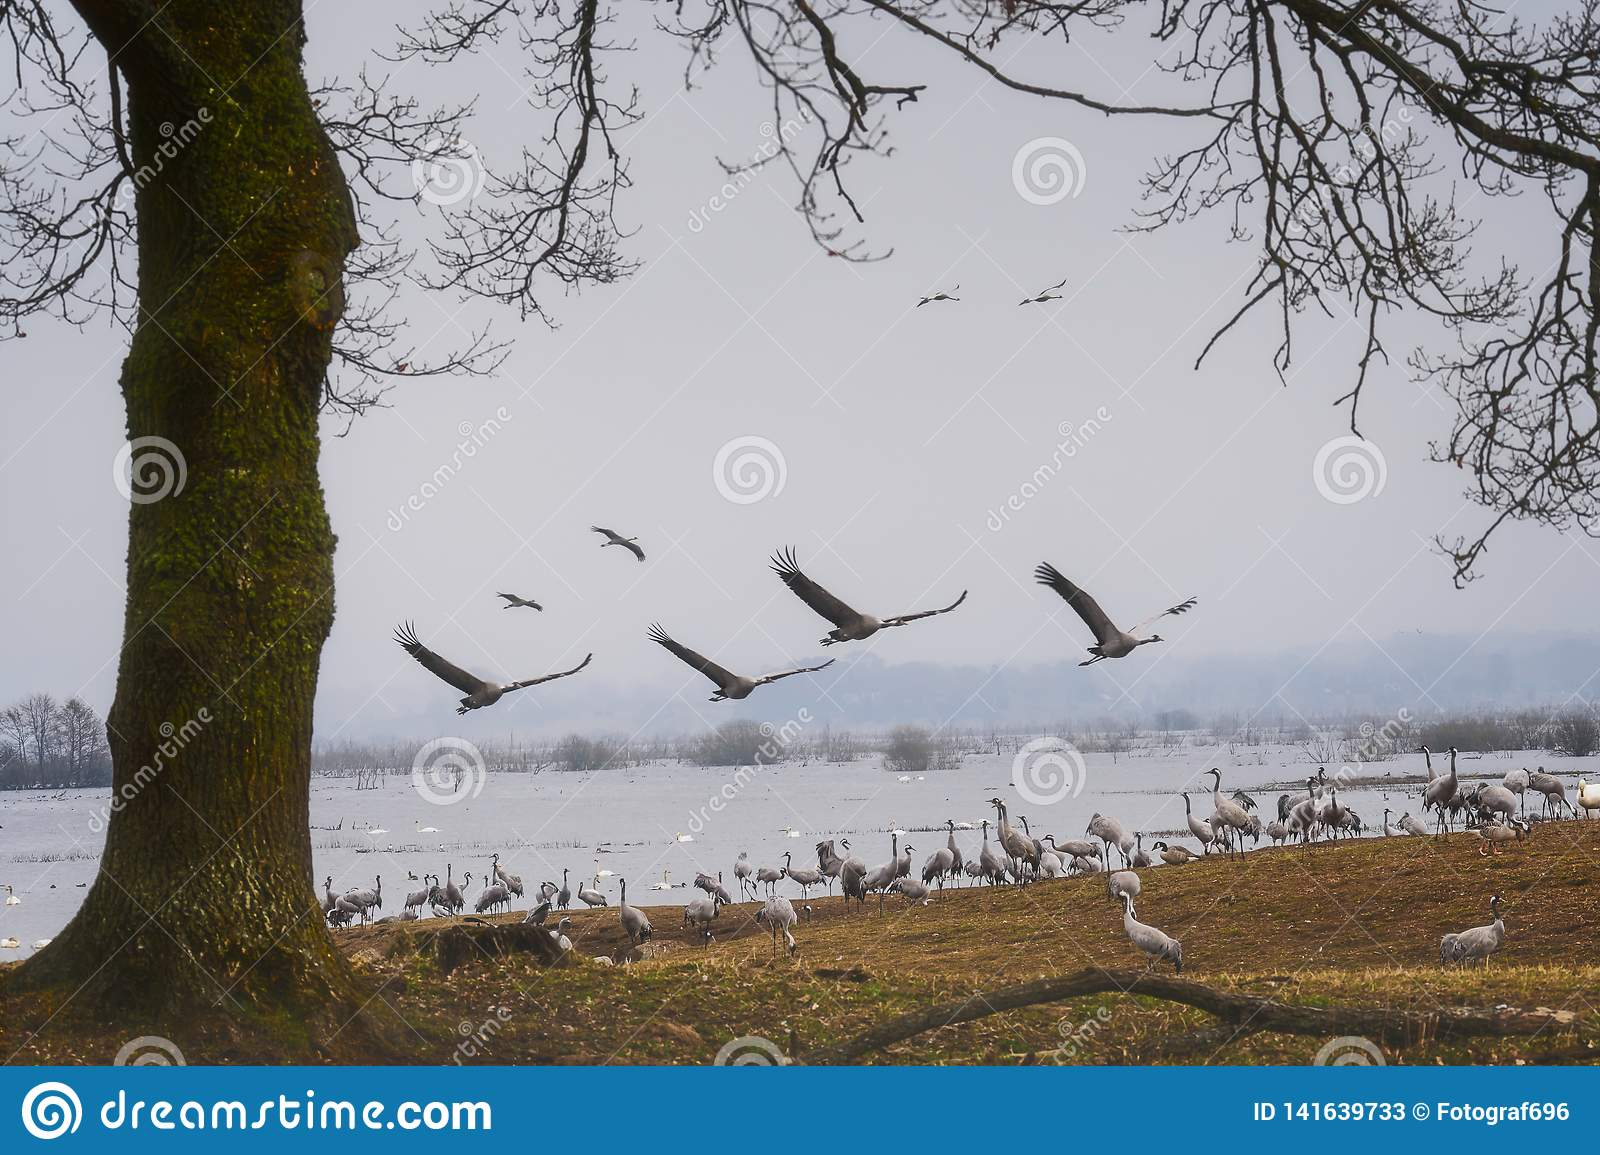 Cranes flying over the lake.